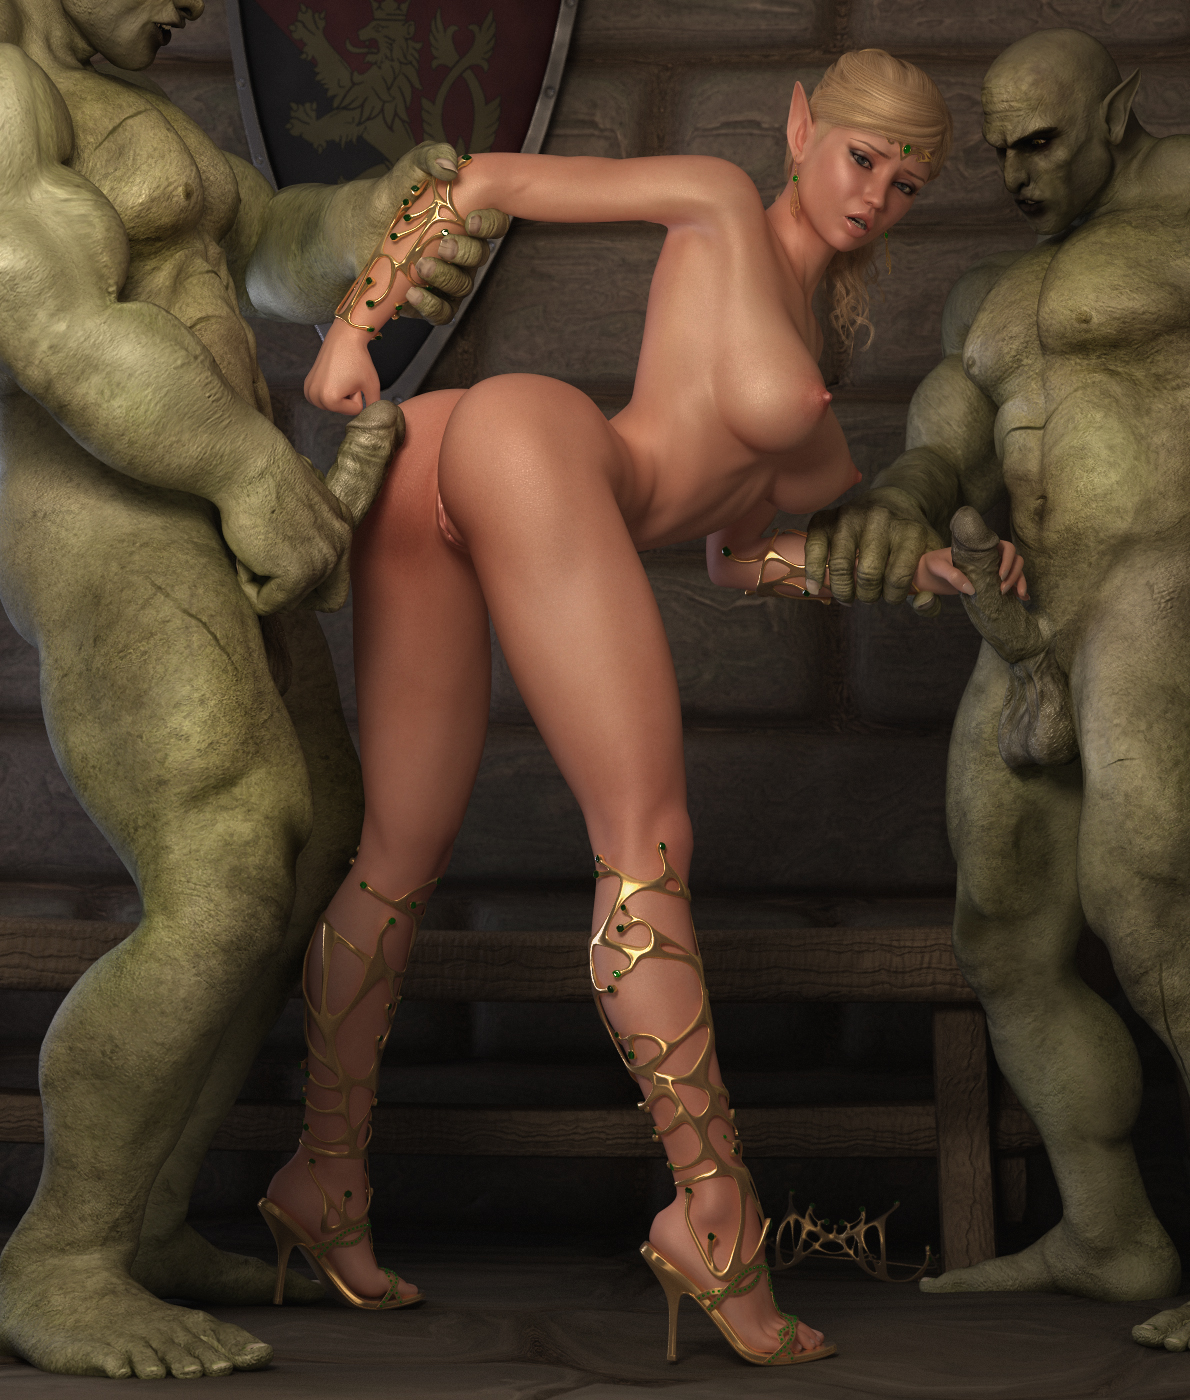 Free monster hunt porn nudes scenes